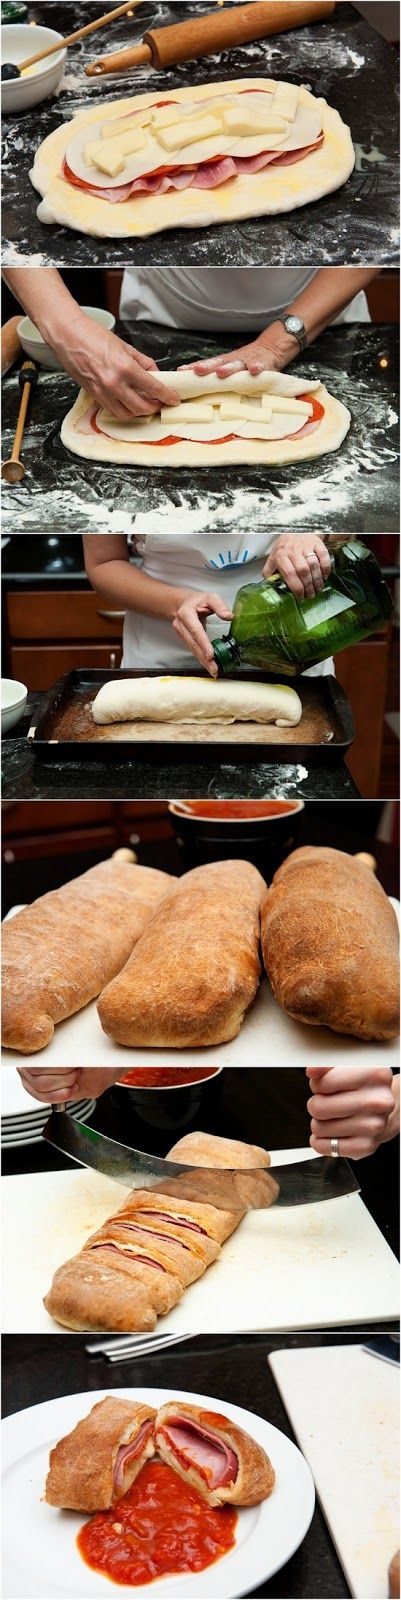 Stromboli use salami, any Italian deli meats. Pickled peppers, cheese.... Sounds good, must try